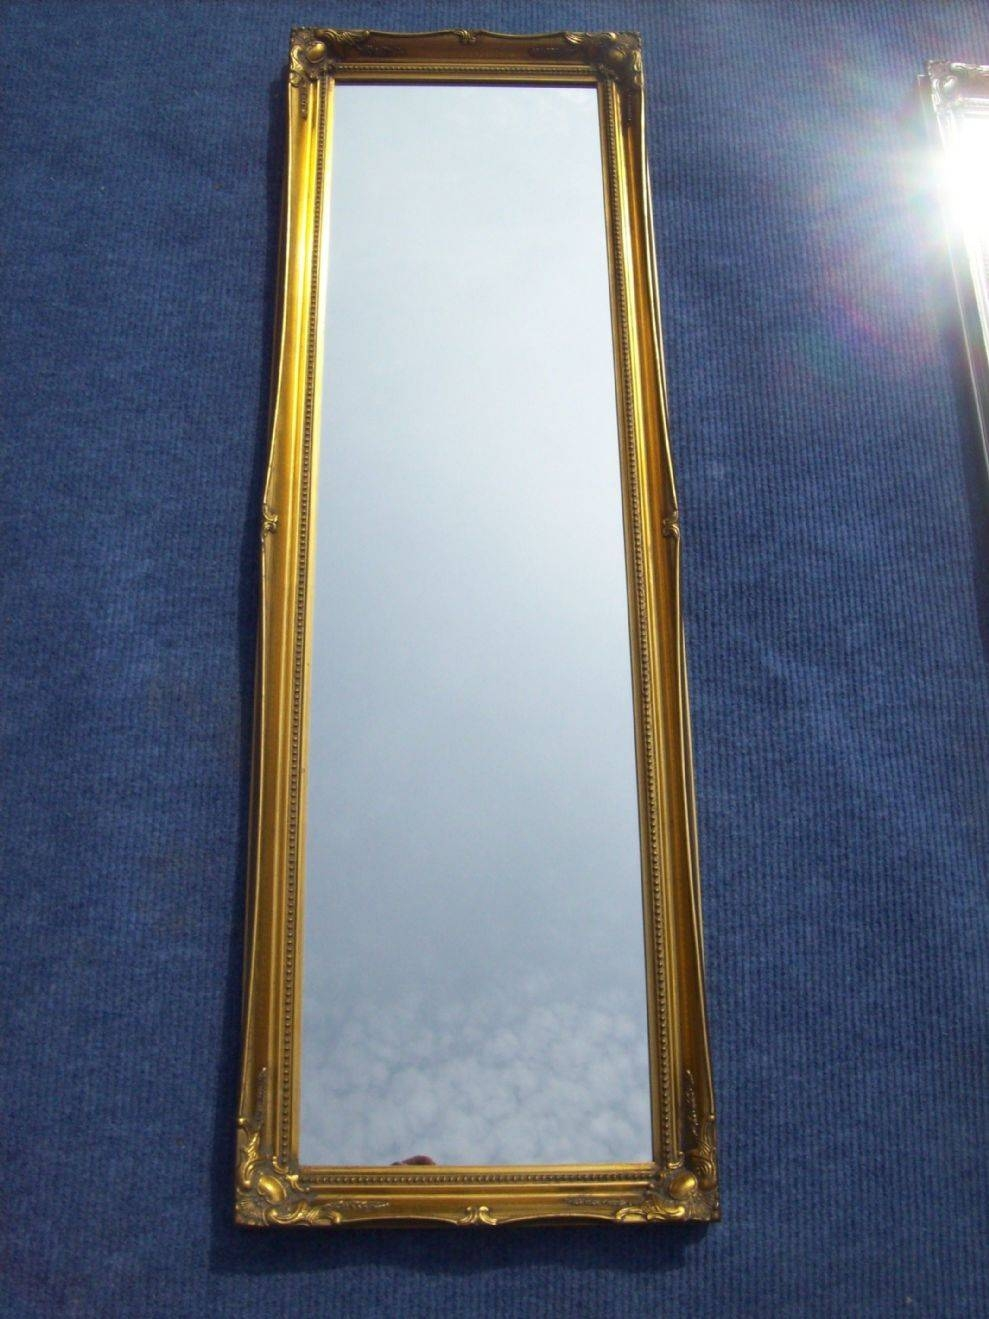 Antique Gold Full Length Dressing Mirror pertaining to Full Length Antique Dressing Mirrors (Image 2 of 15)